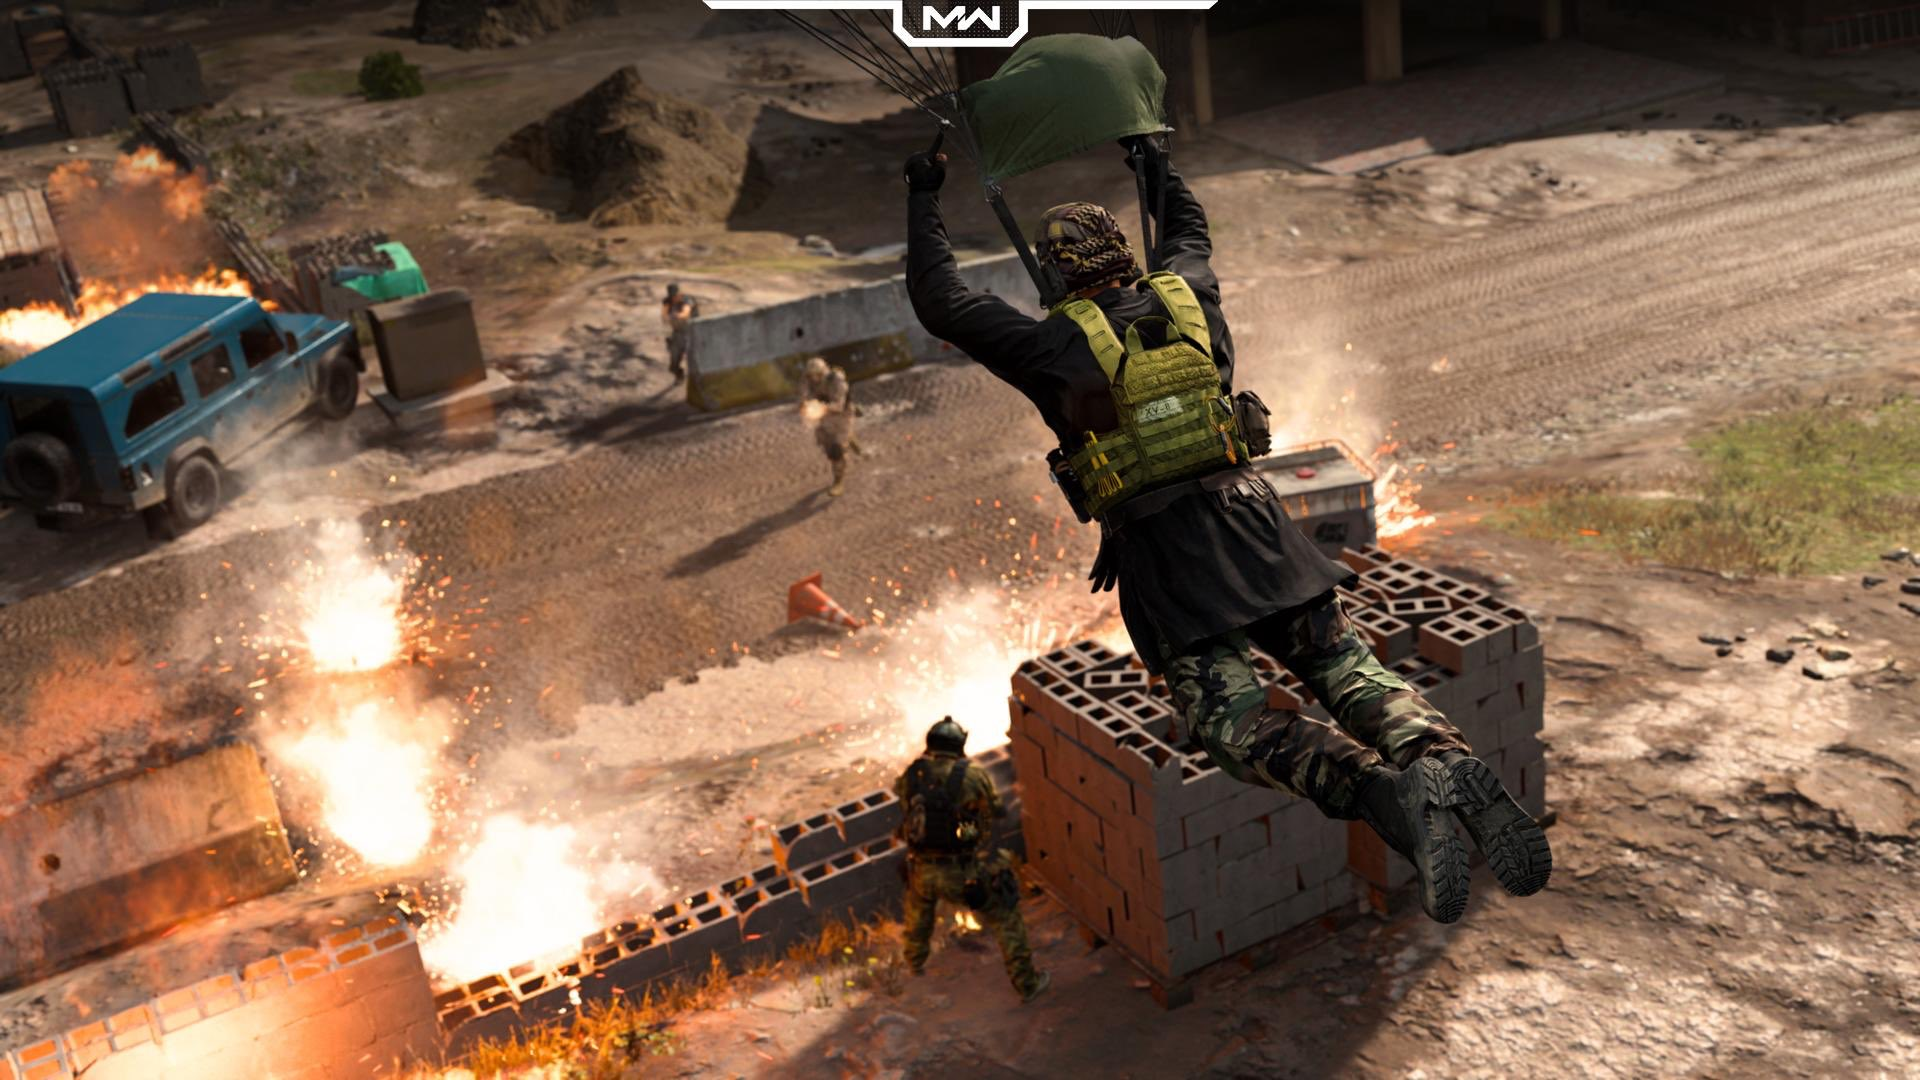 Warzone player parachuting into a fight